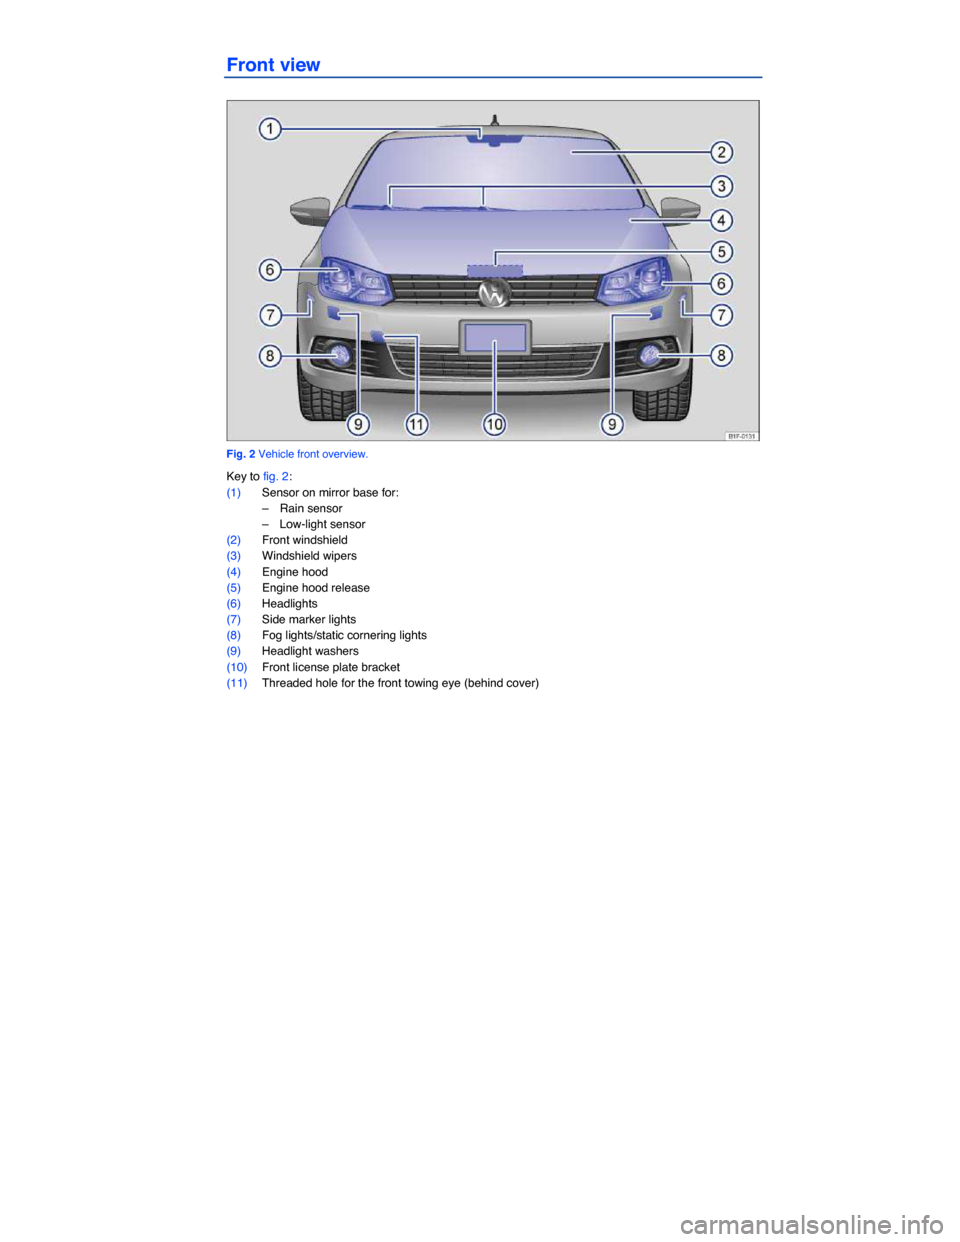 VOLKSWAGEN EOS 2013 1.G Owners Manual   Front view    Fig. 2 Vehicle front overview.  Key to fig. 2:  (1) Sensor on mirror base for:  –  Rain sensor   –  Low-light sensor   (2) Front windshield  (3) Windshield wipers   (4) Engine hood